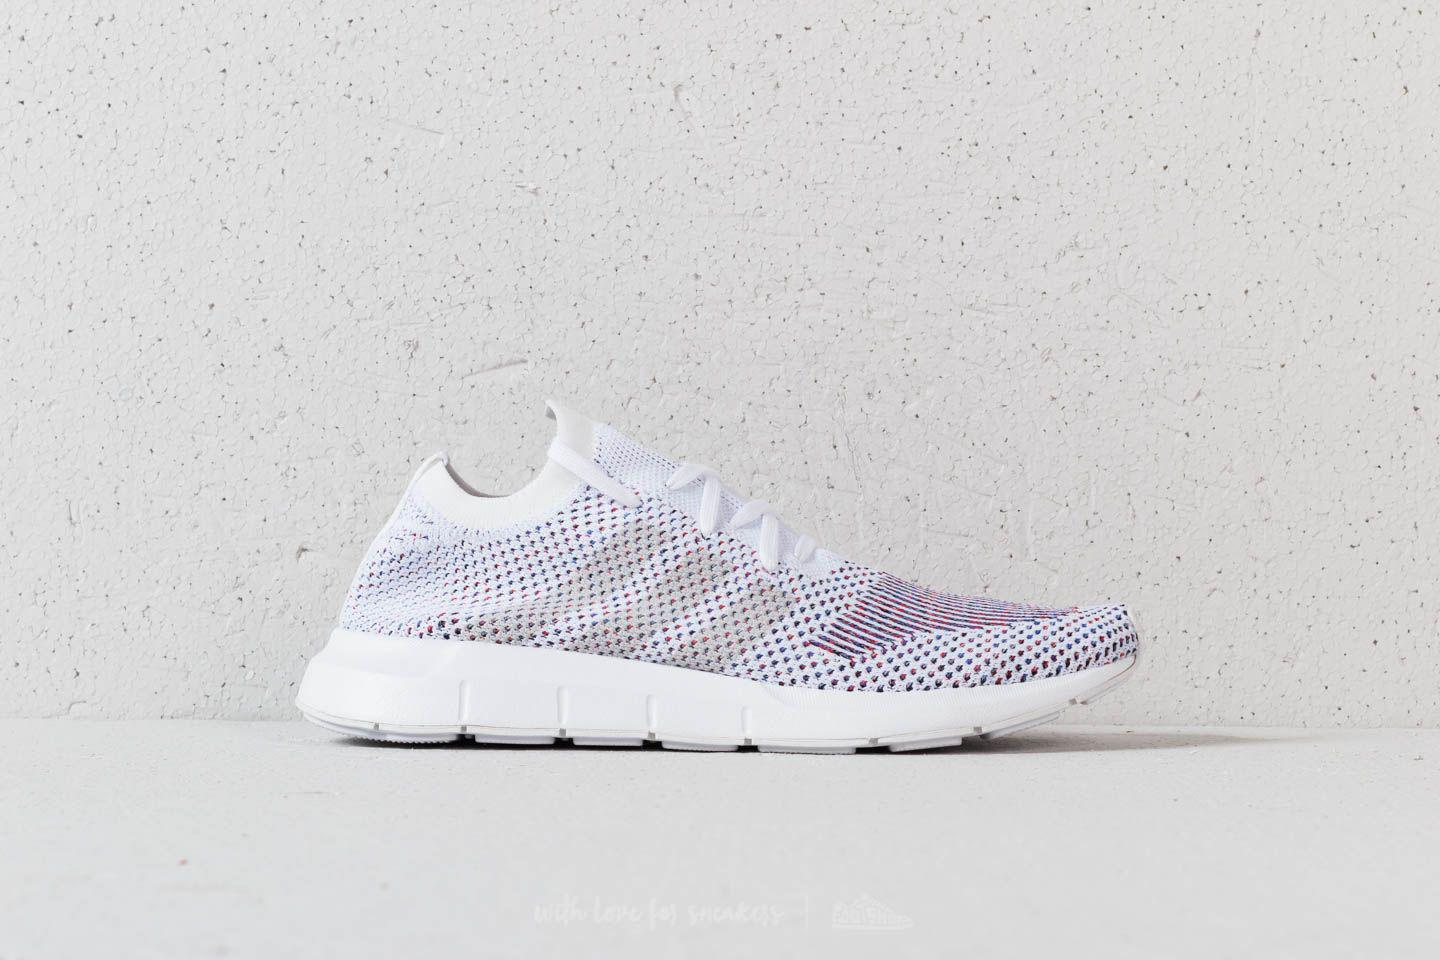 adidas Adidas Swift Run Primeknit Footwear / Greone/ Mgery